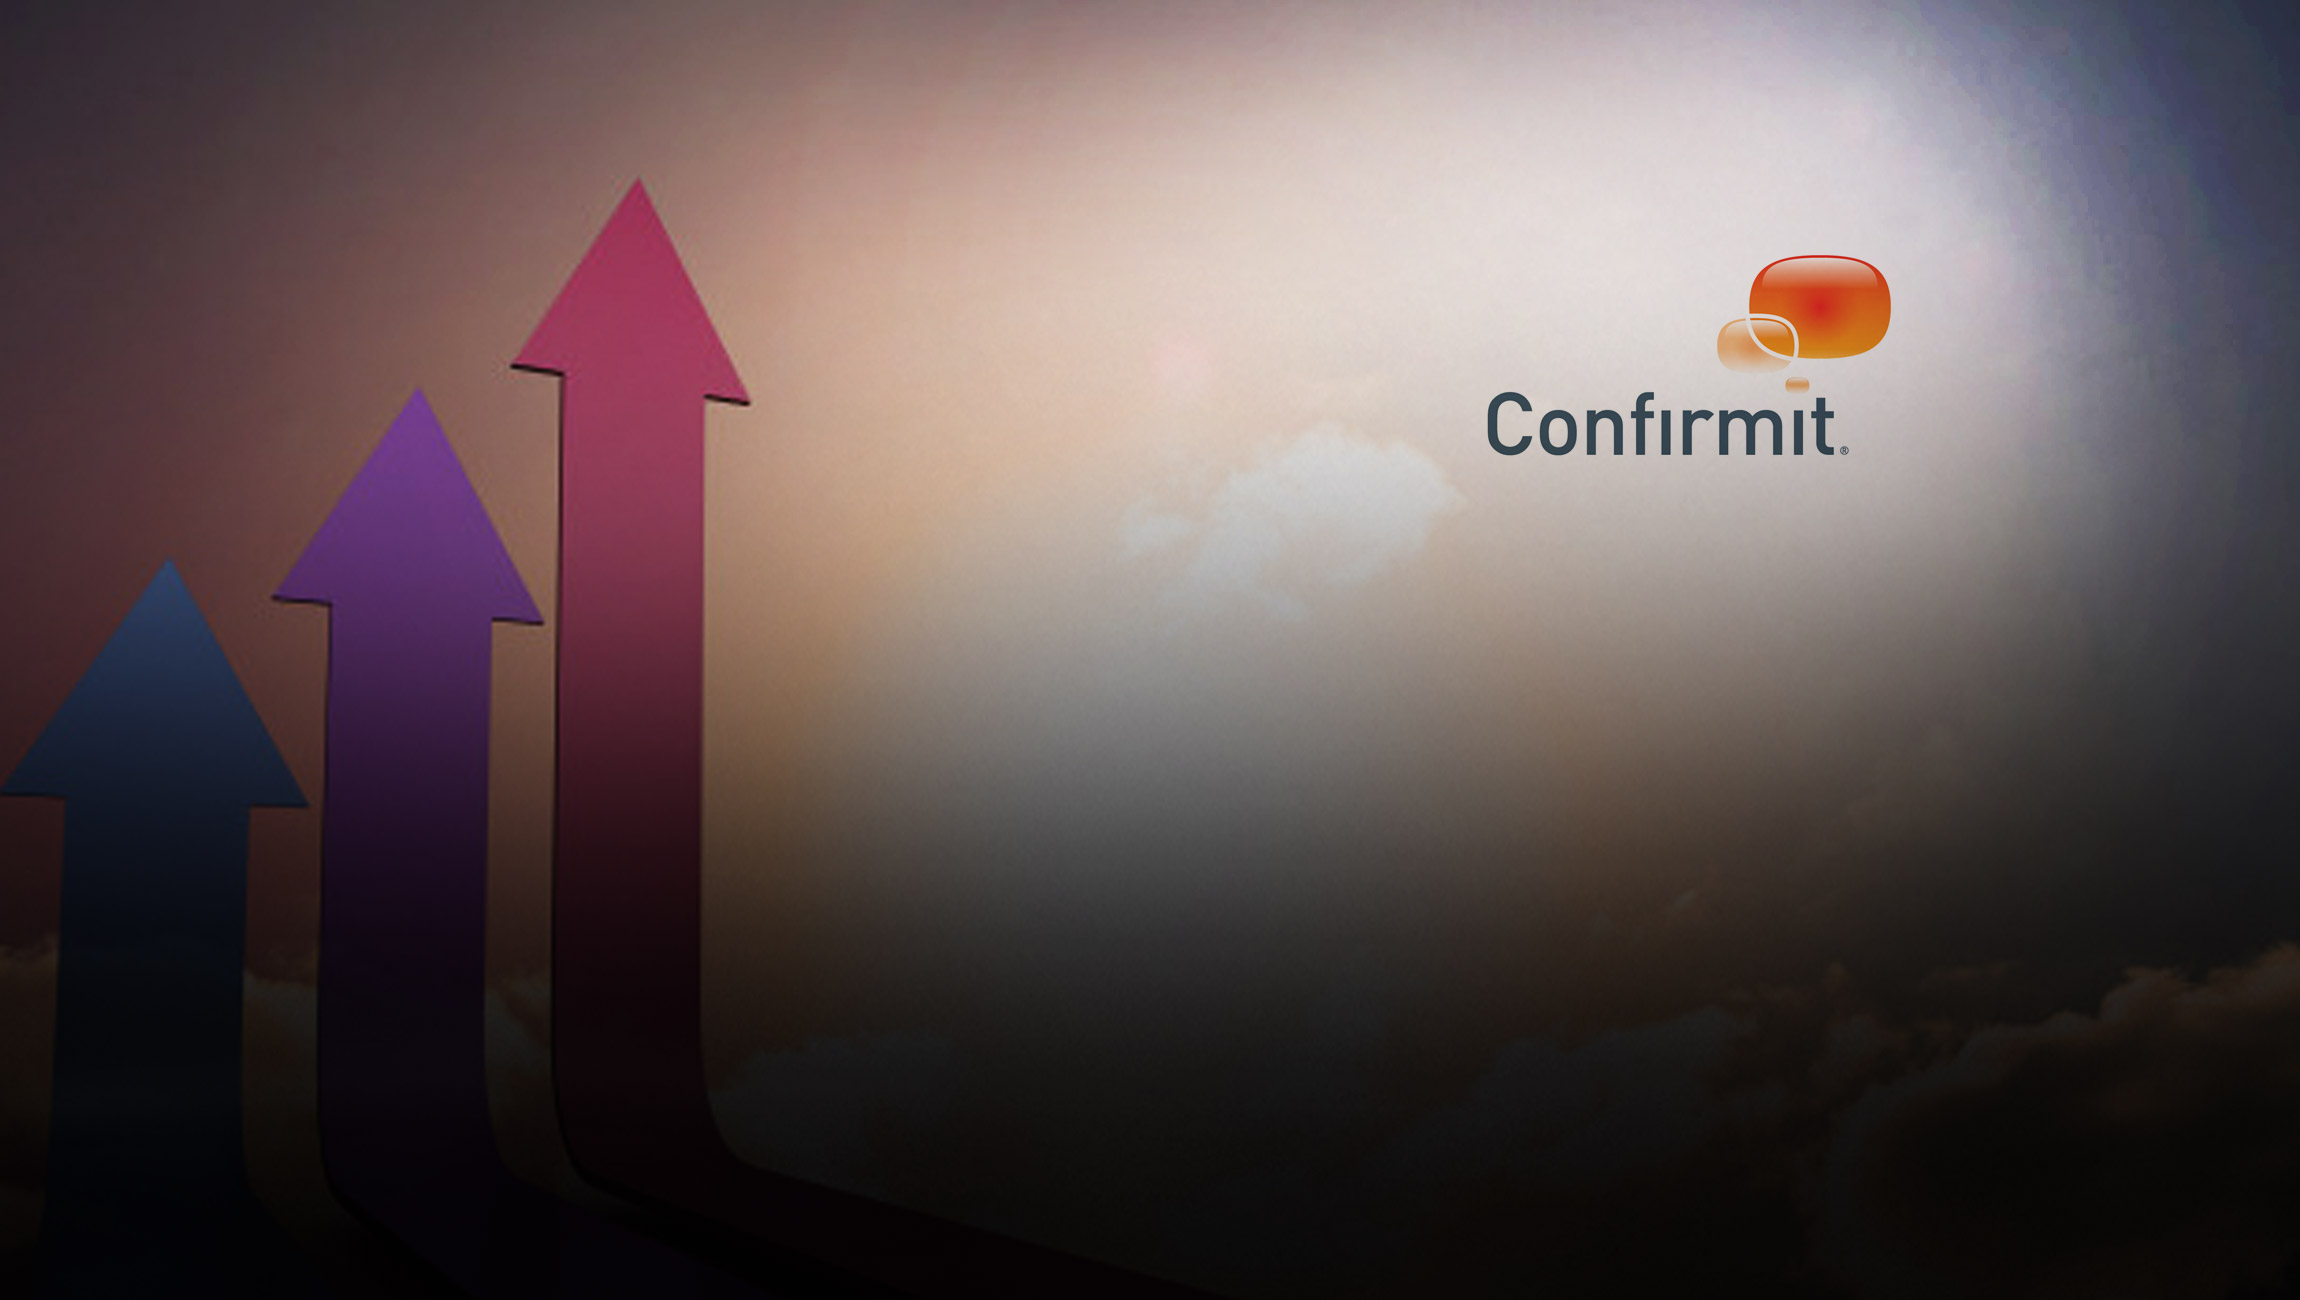 Confirmit Ends 2019 on a High Note; Primed for More Success in 2020